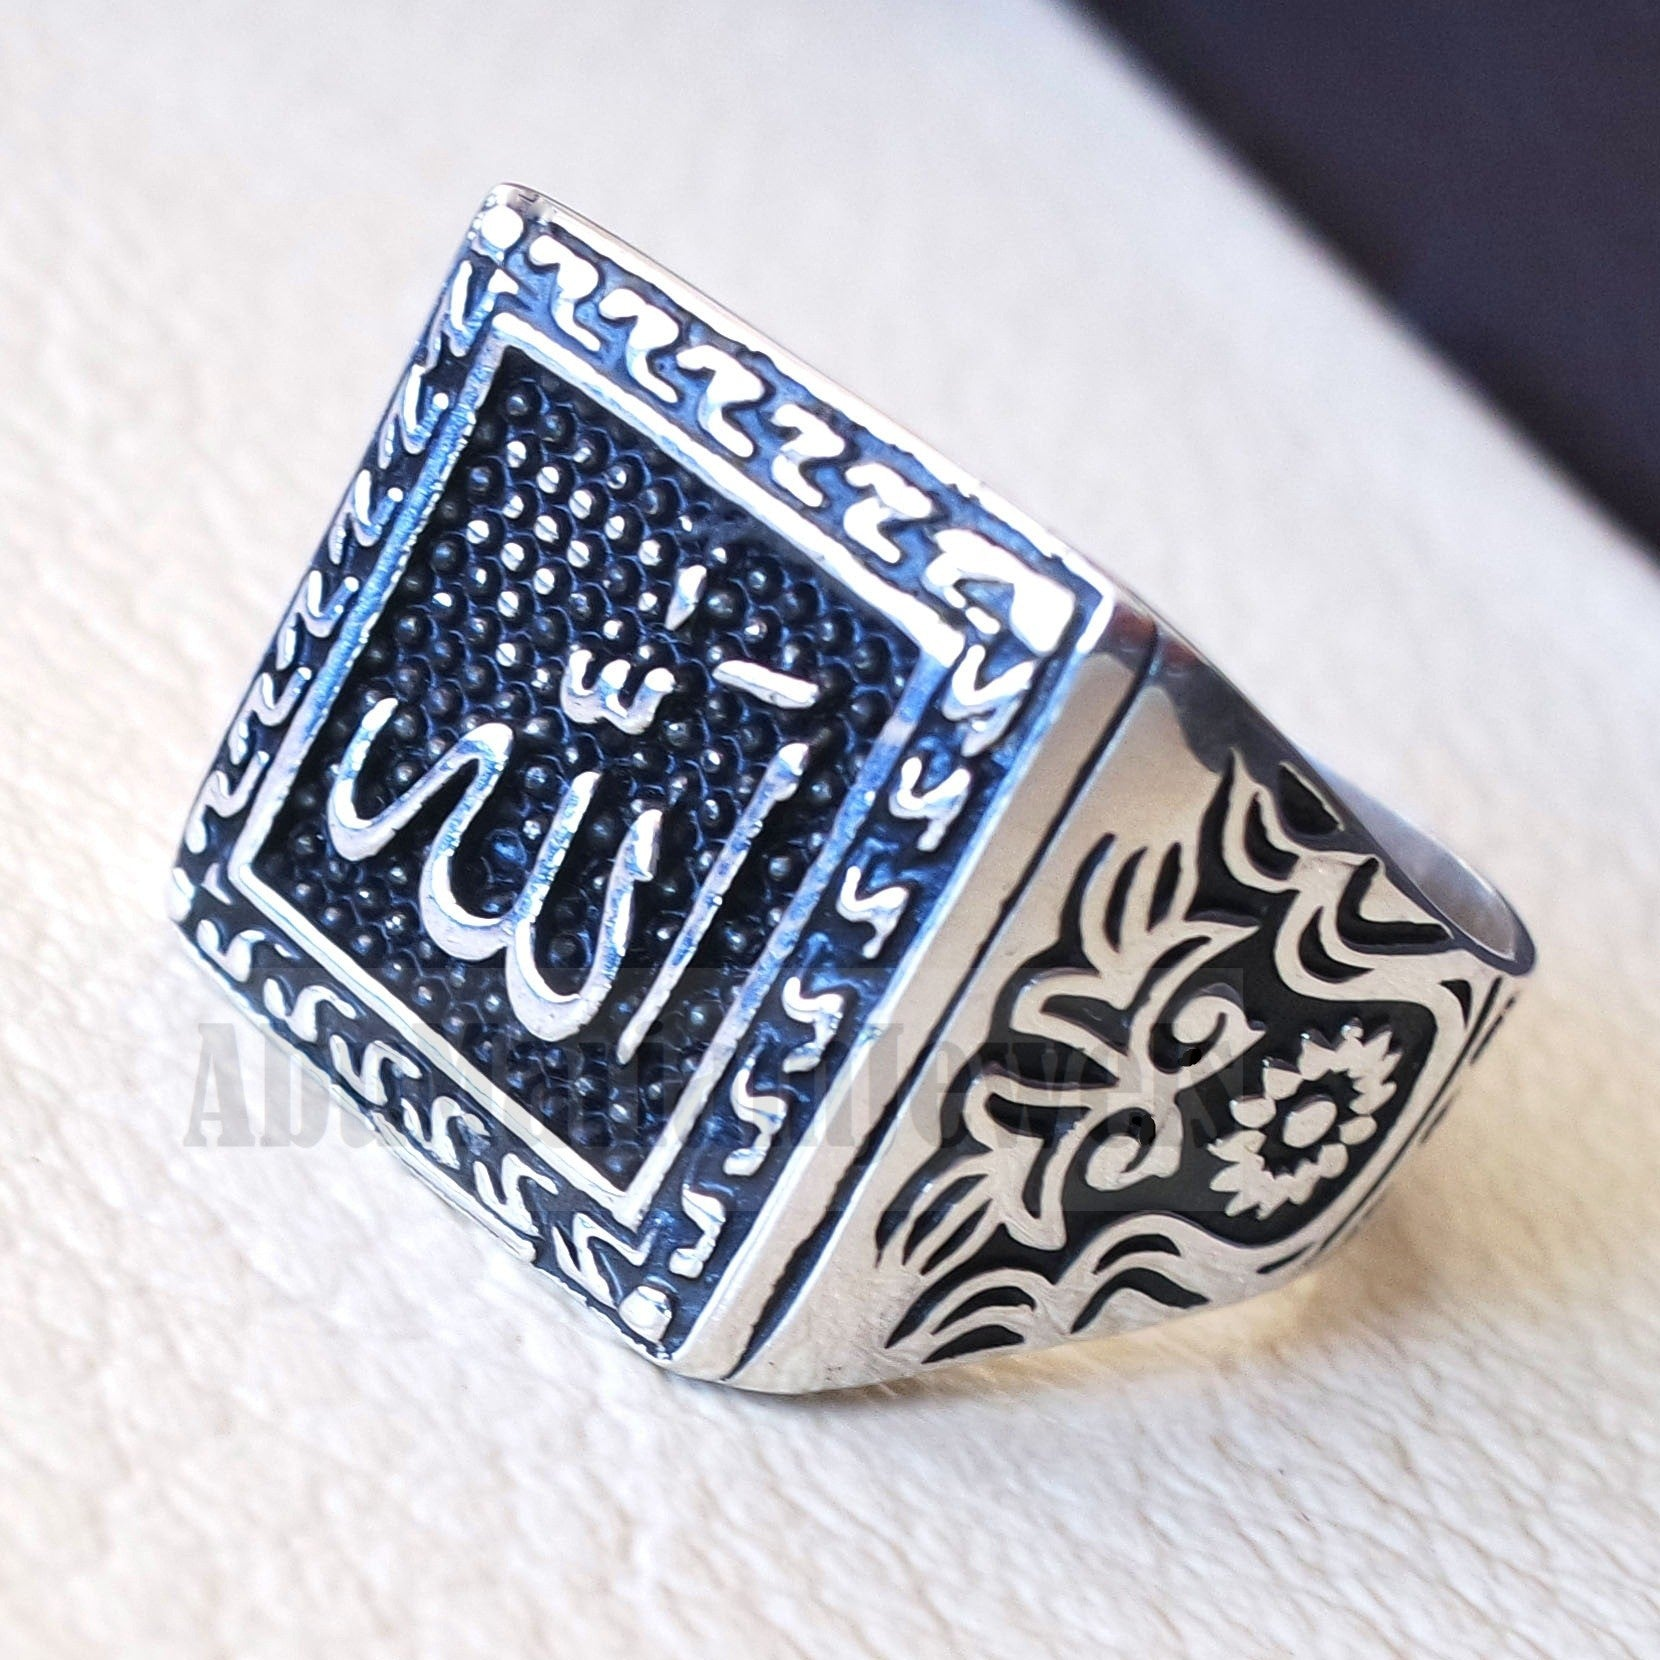 Allah arabic islamic sterling silver 925 man ring all sizes square face arab middle eastern turkey islam الله اسلام لفظ الجلاله